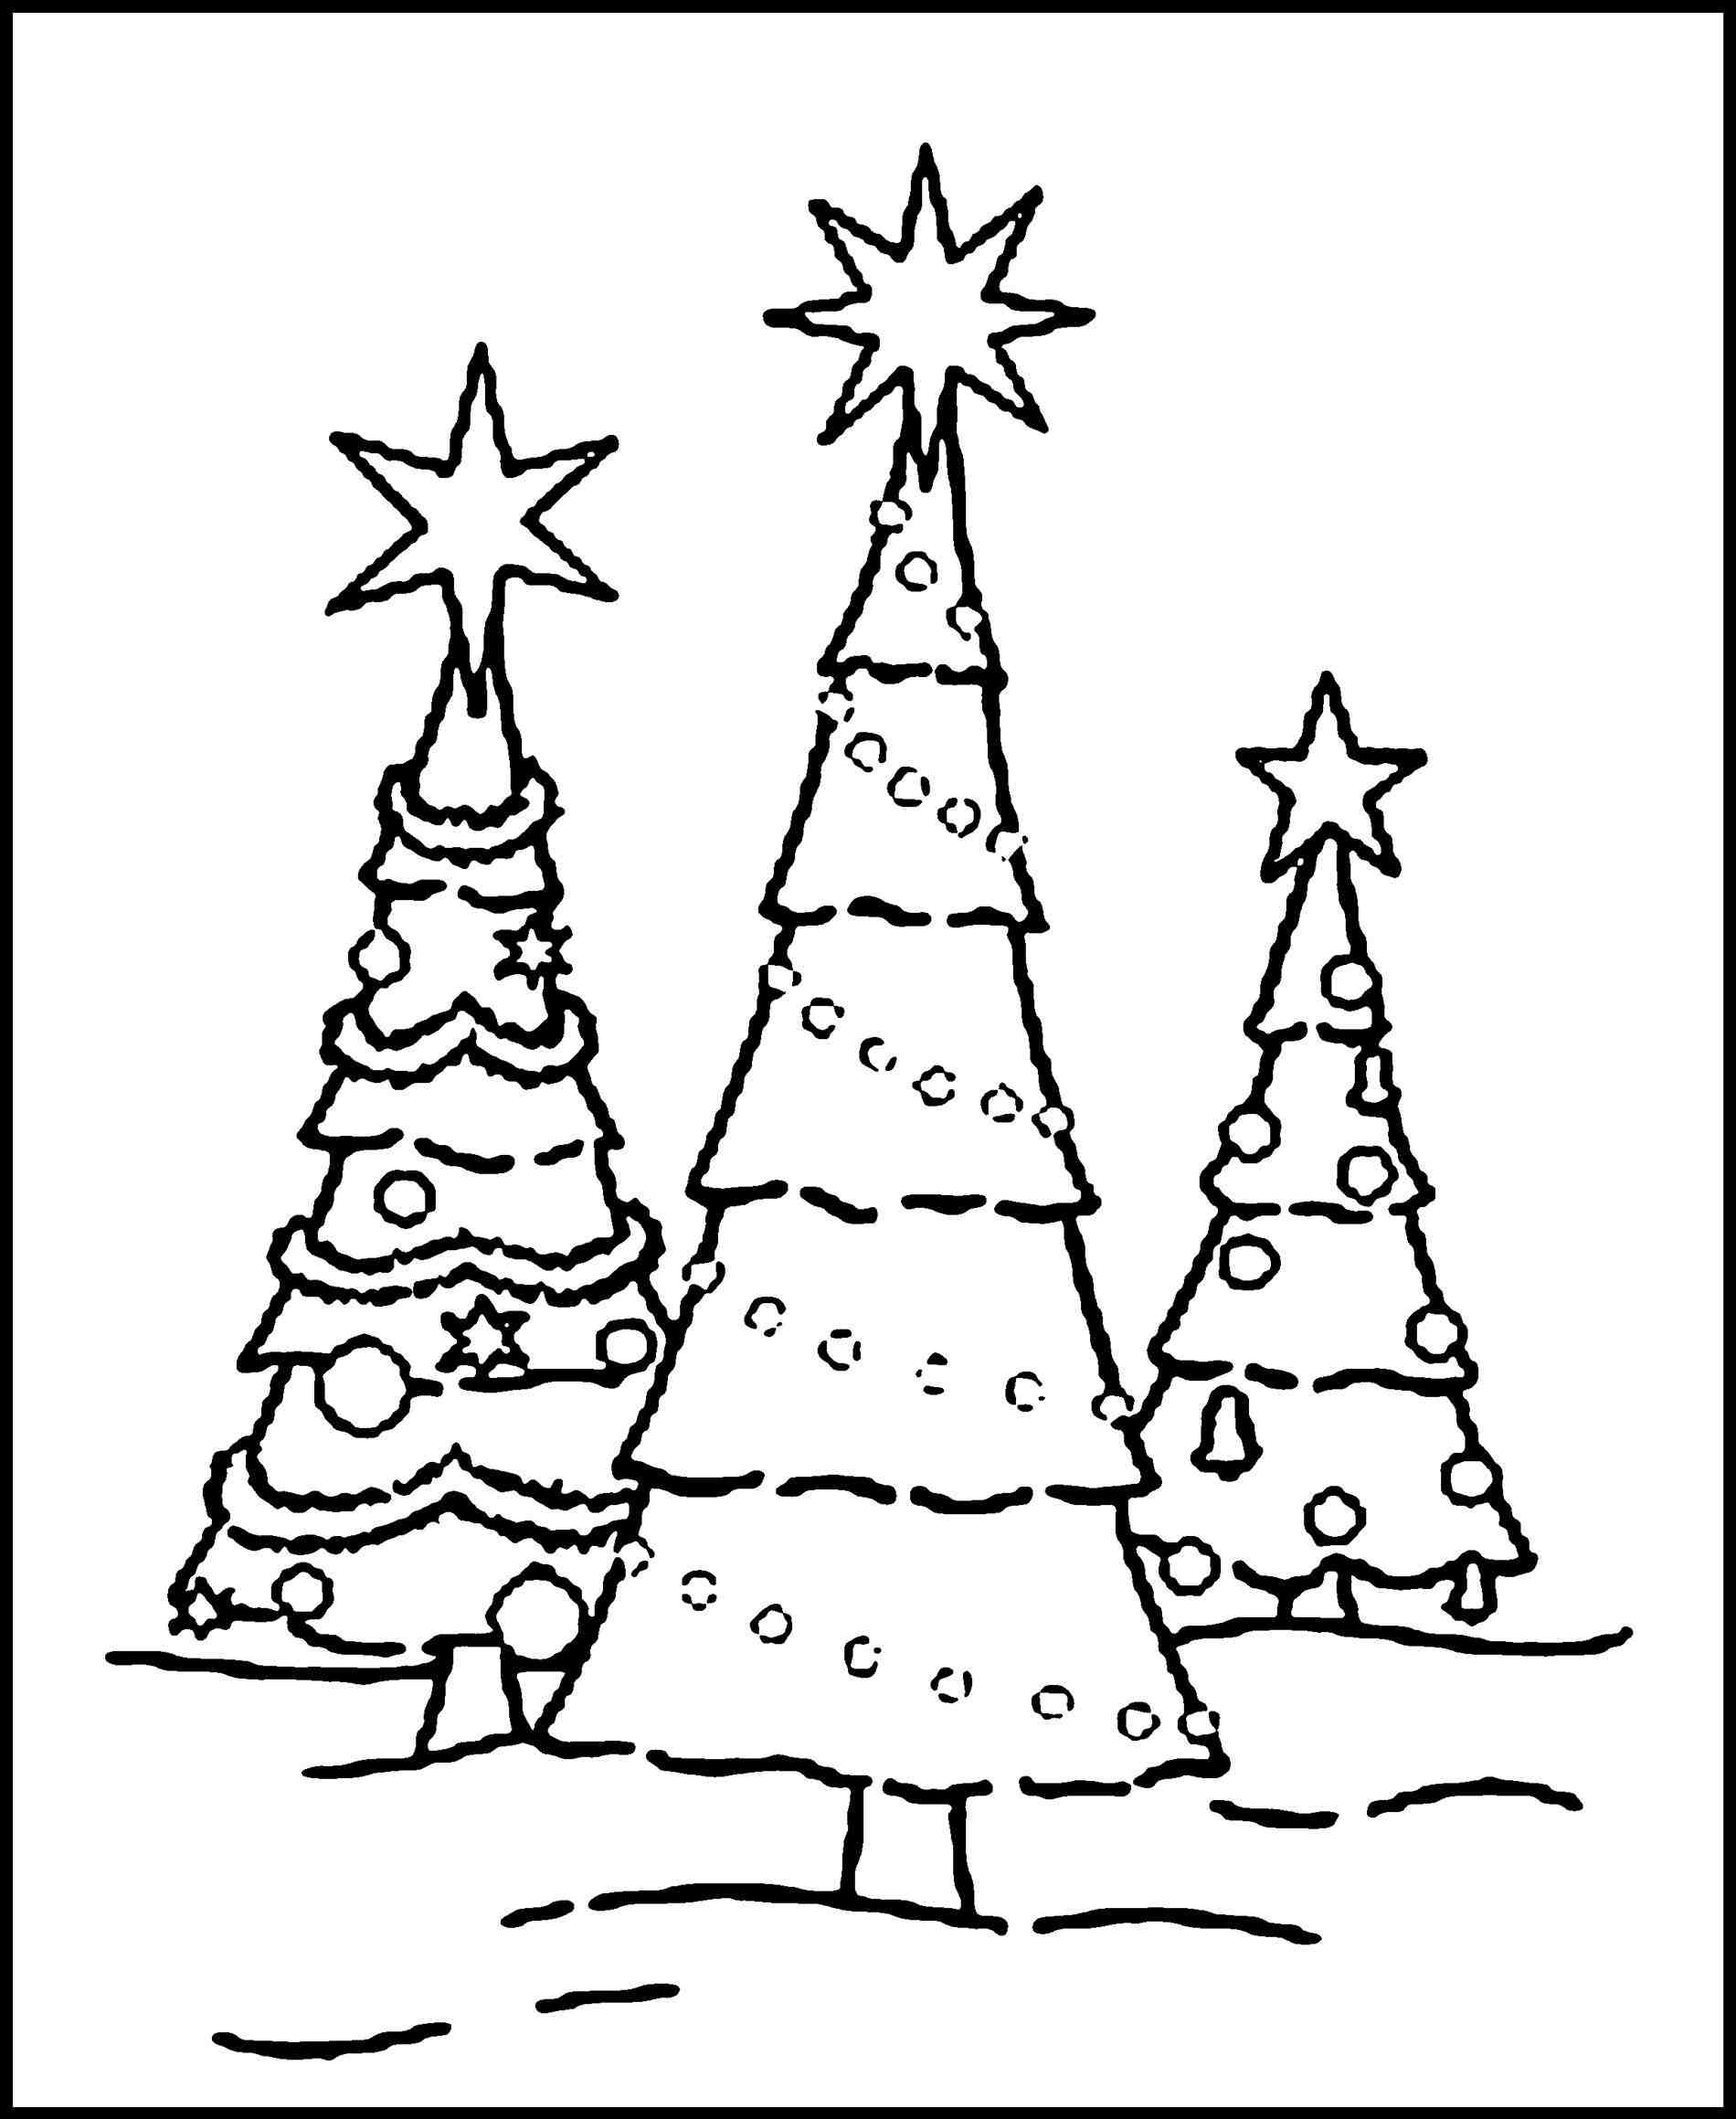 simple adult coloring pages - christmas tree coloring pages adults 3